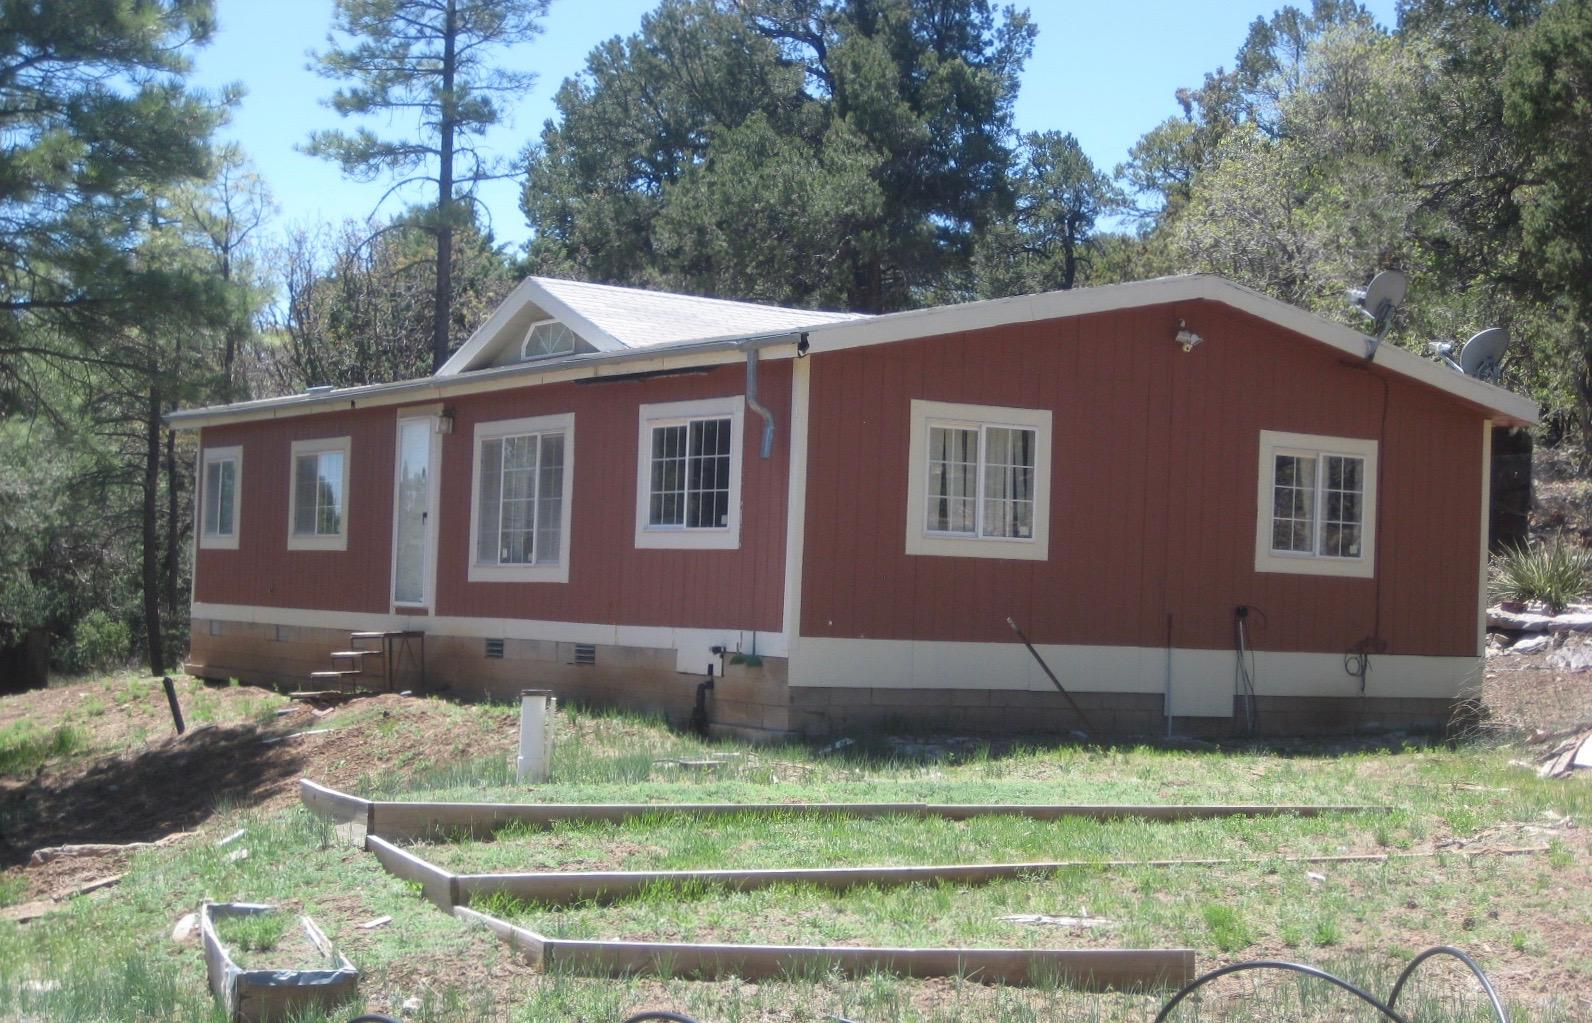 PEACEFUL & SERENE! Your Tijeras Mountain retreat awaits. Sitting high on the lot, this manufactured home features 3 bedrooms and 2 baths. Enjoy relaxing in the large living room or eating in the breakfast nook. The property has a lot to offer! Ideally situated close to shopping, parks, schools and all the amenities of the city, yet the quietly located in the woods. DON'T MISS THIS ONE!!!